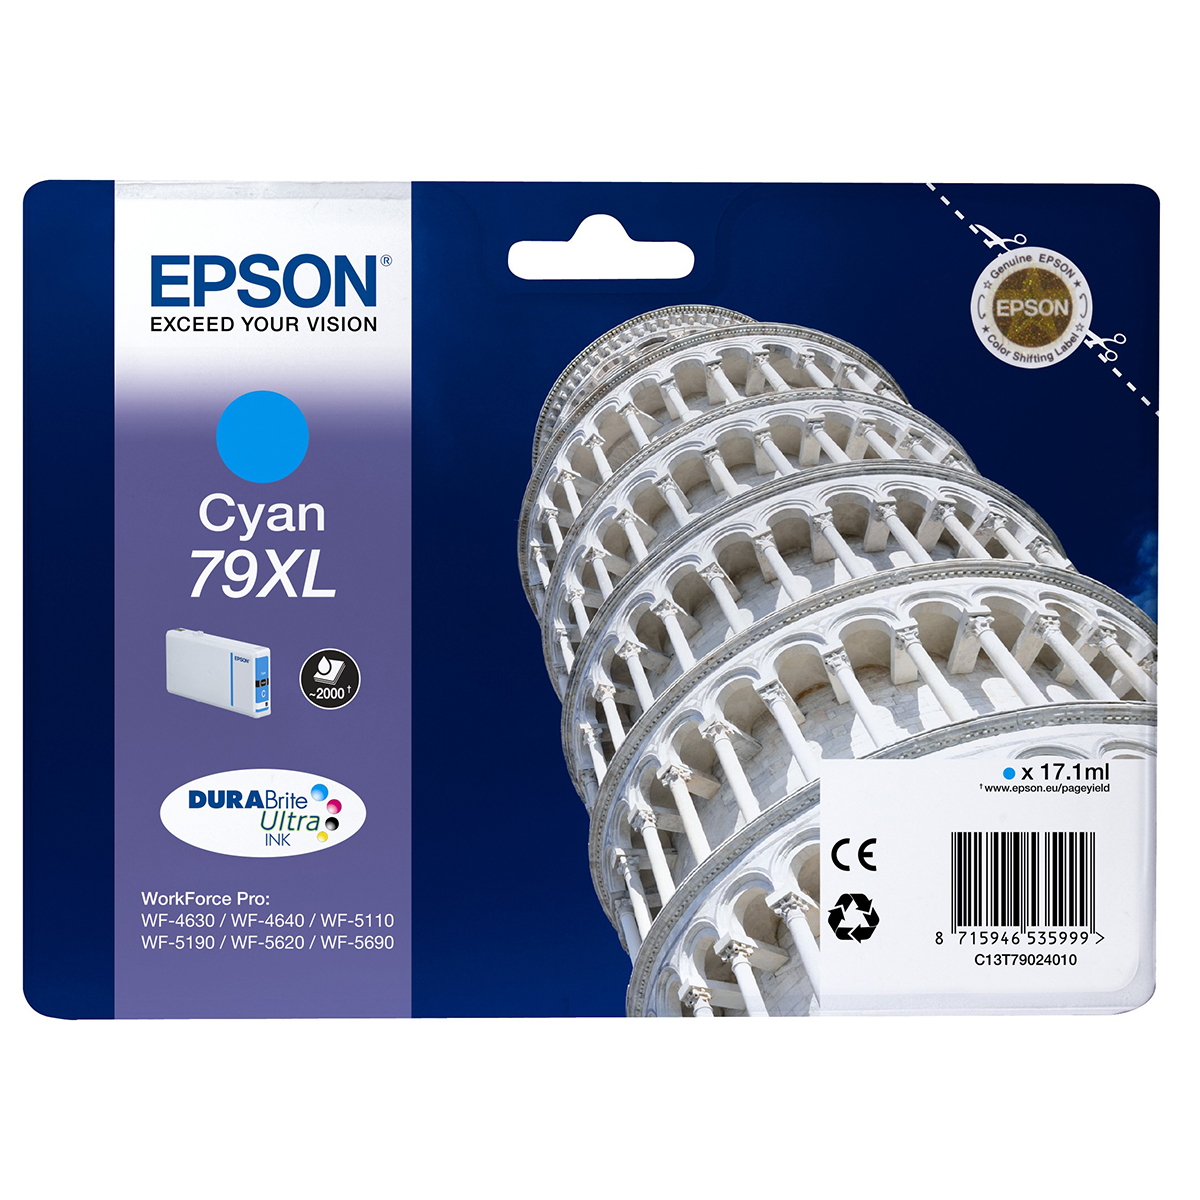 Epson 79XL Ink Cartridge Cyan